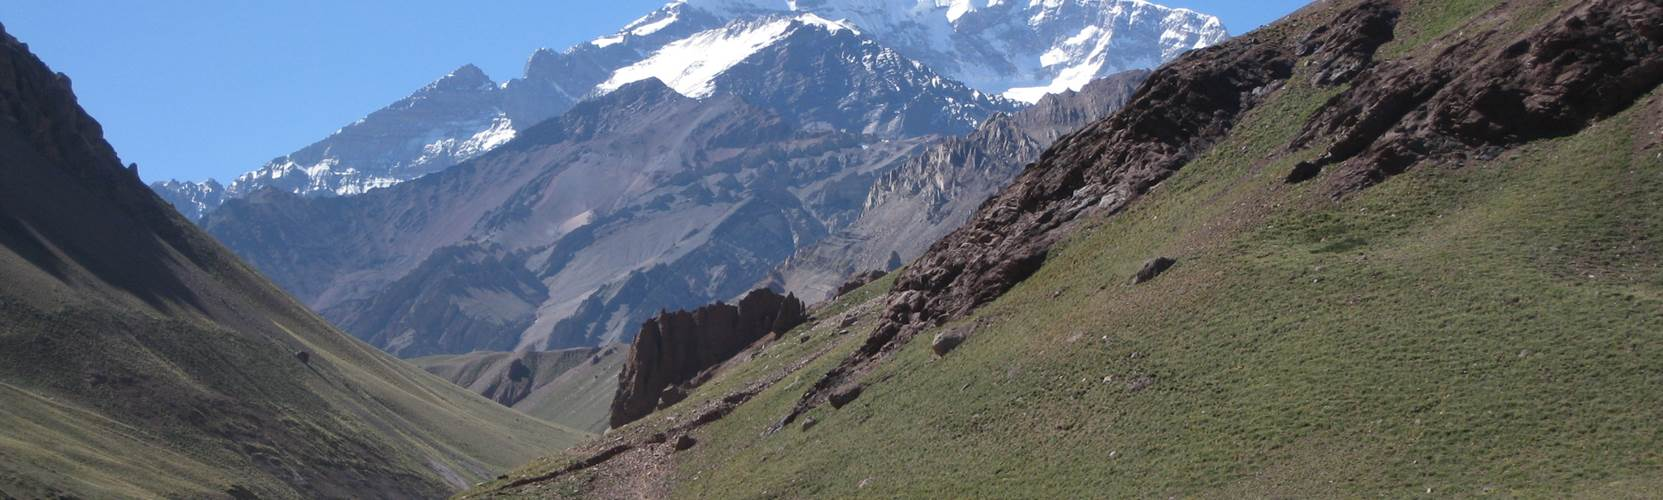 View of Aconcagua up the Horcones valley